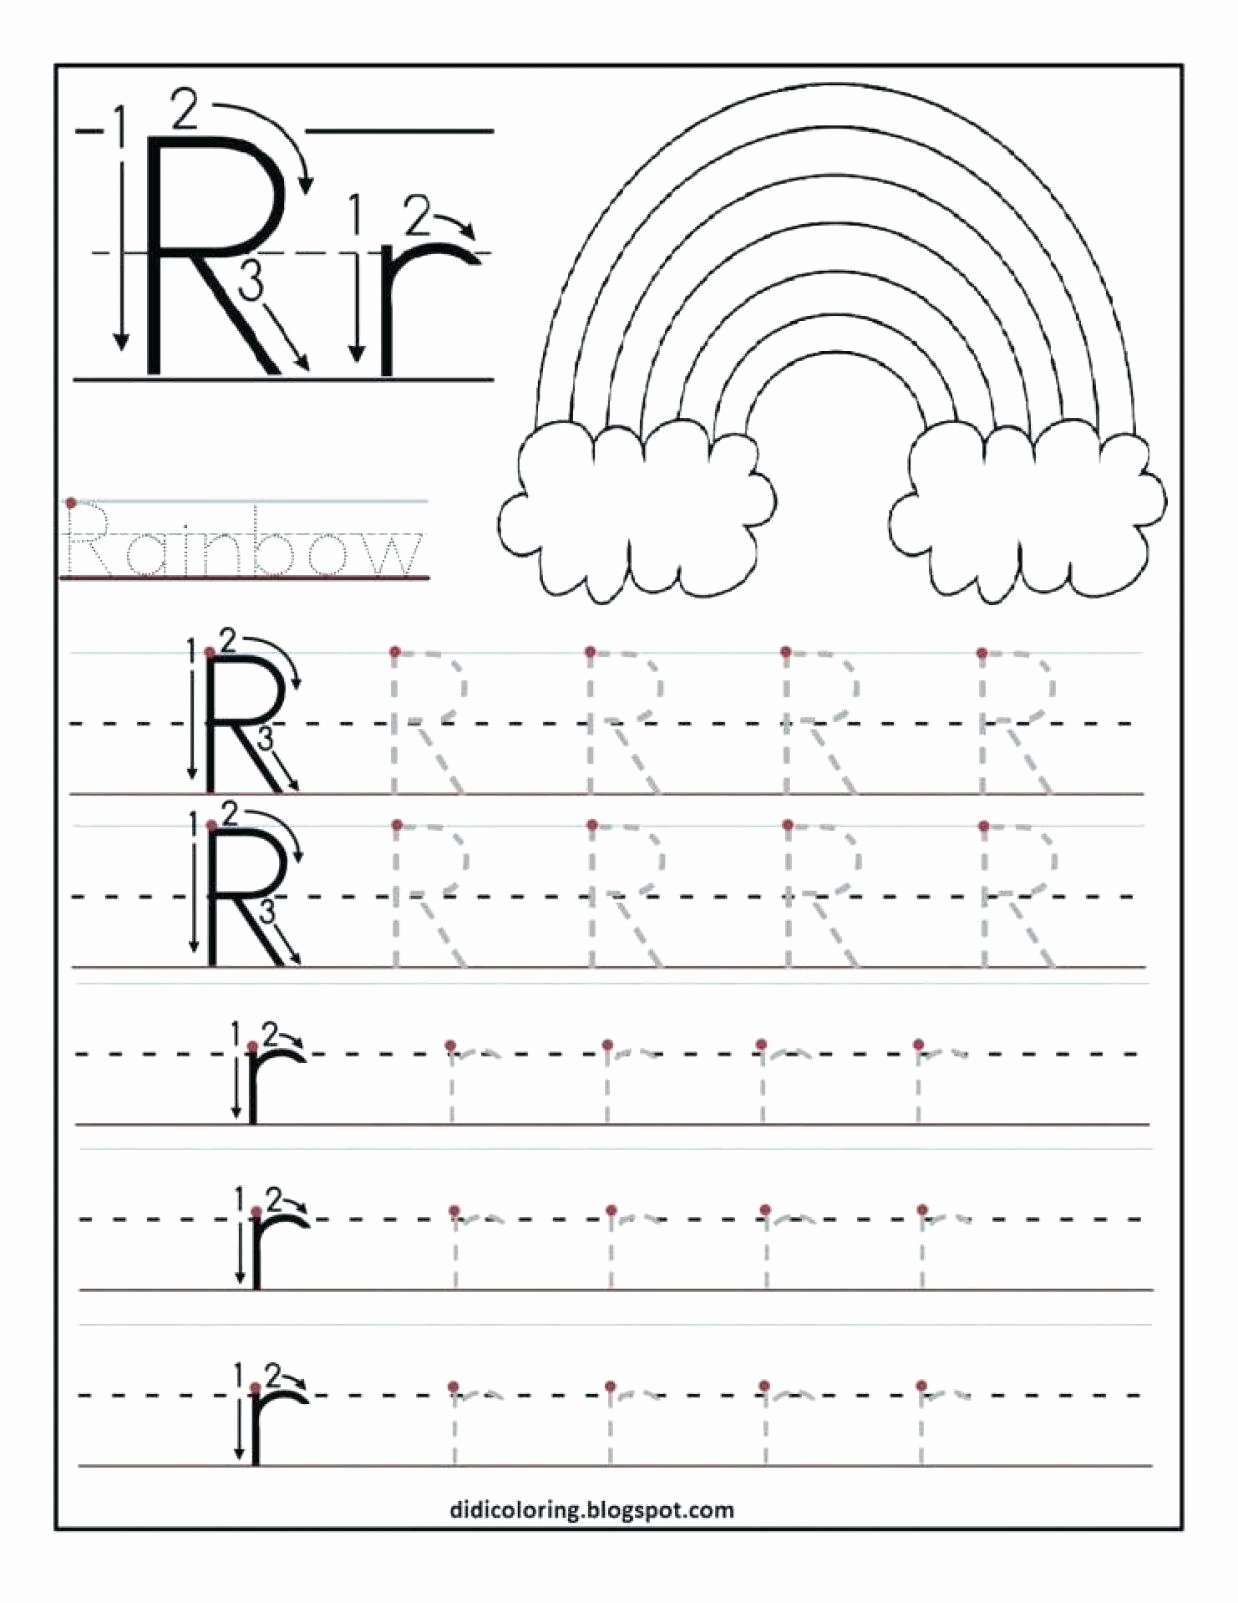 Worksheets for Preschoolers Learning to Write Free Worksheets Letter forming Worksheets Printable and